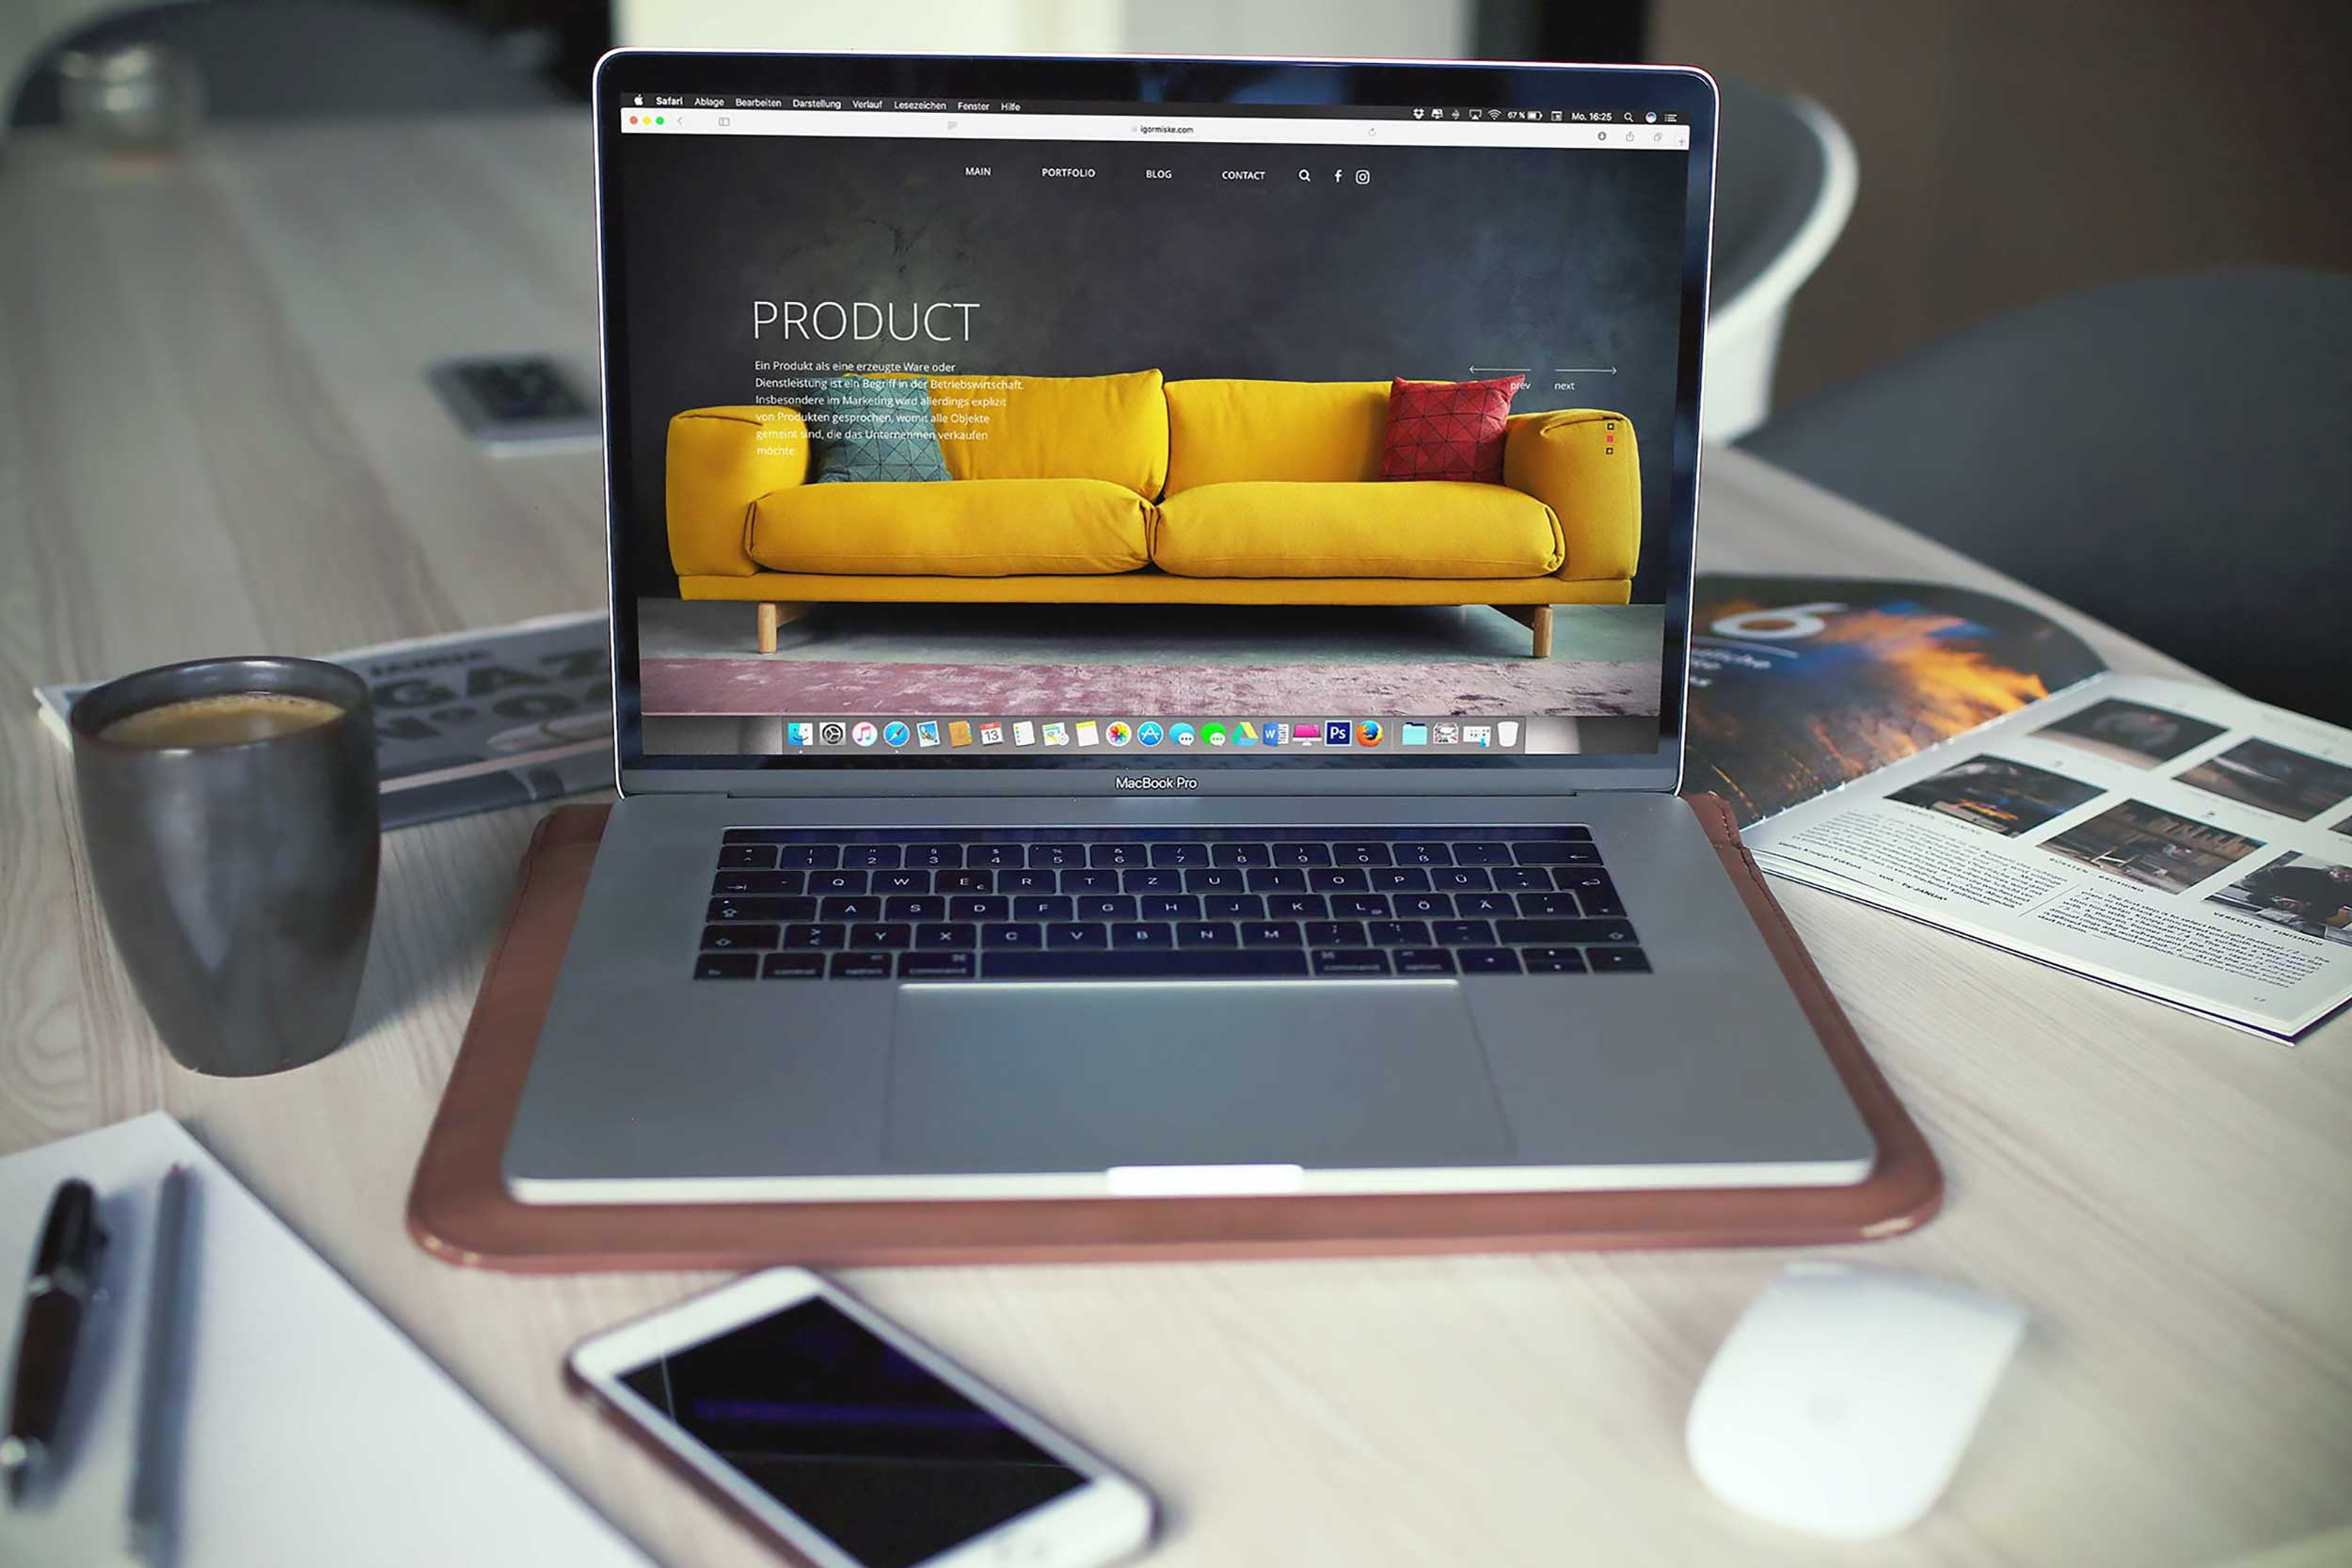 Image of a laptop on a busy desk showing an e-commerce storefront with a sofa on screen